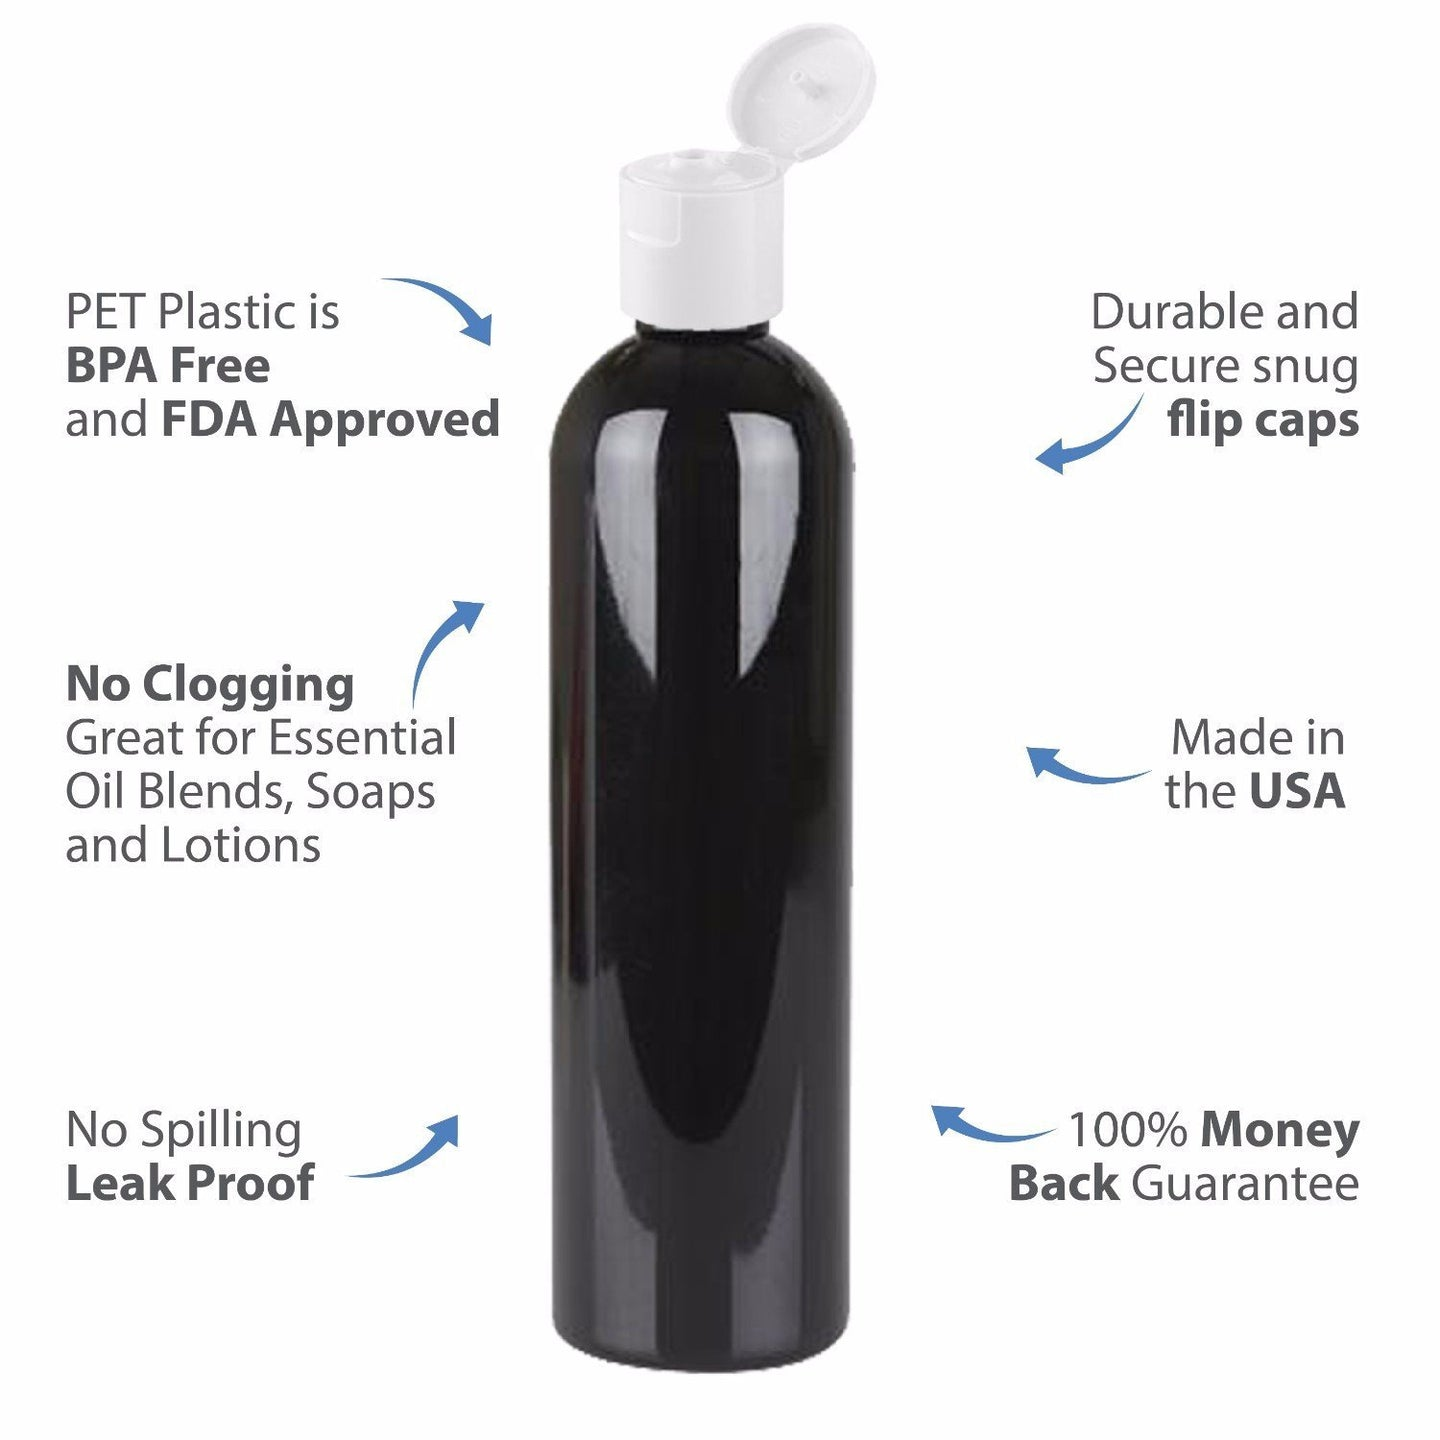 MoYo Natural Labs 8 oz Travel Bottles, Empty Travel Containers with Flip Caps, BPA Free PET Plastic Squeezable Toiletry/Cosmetic Bottles (30 pack, Black)